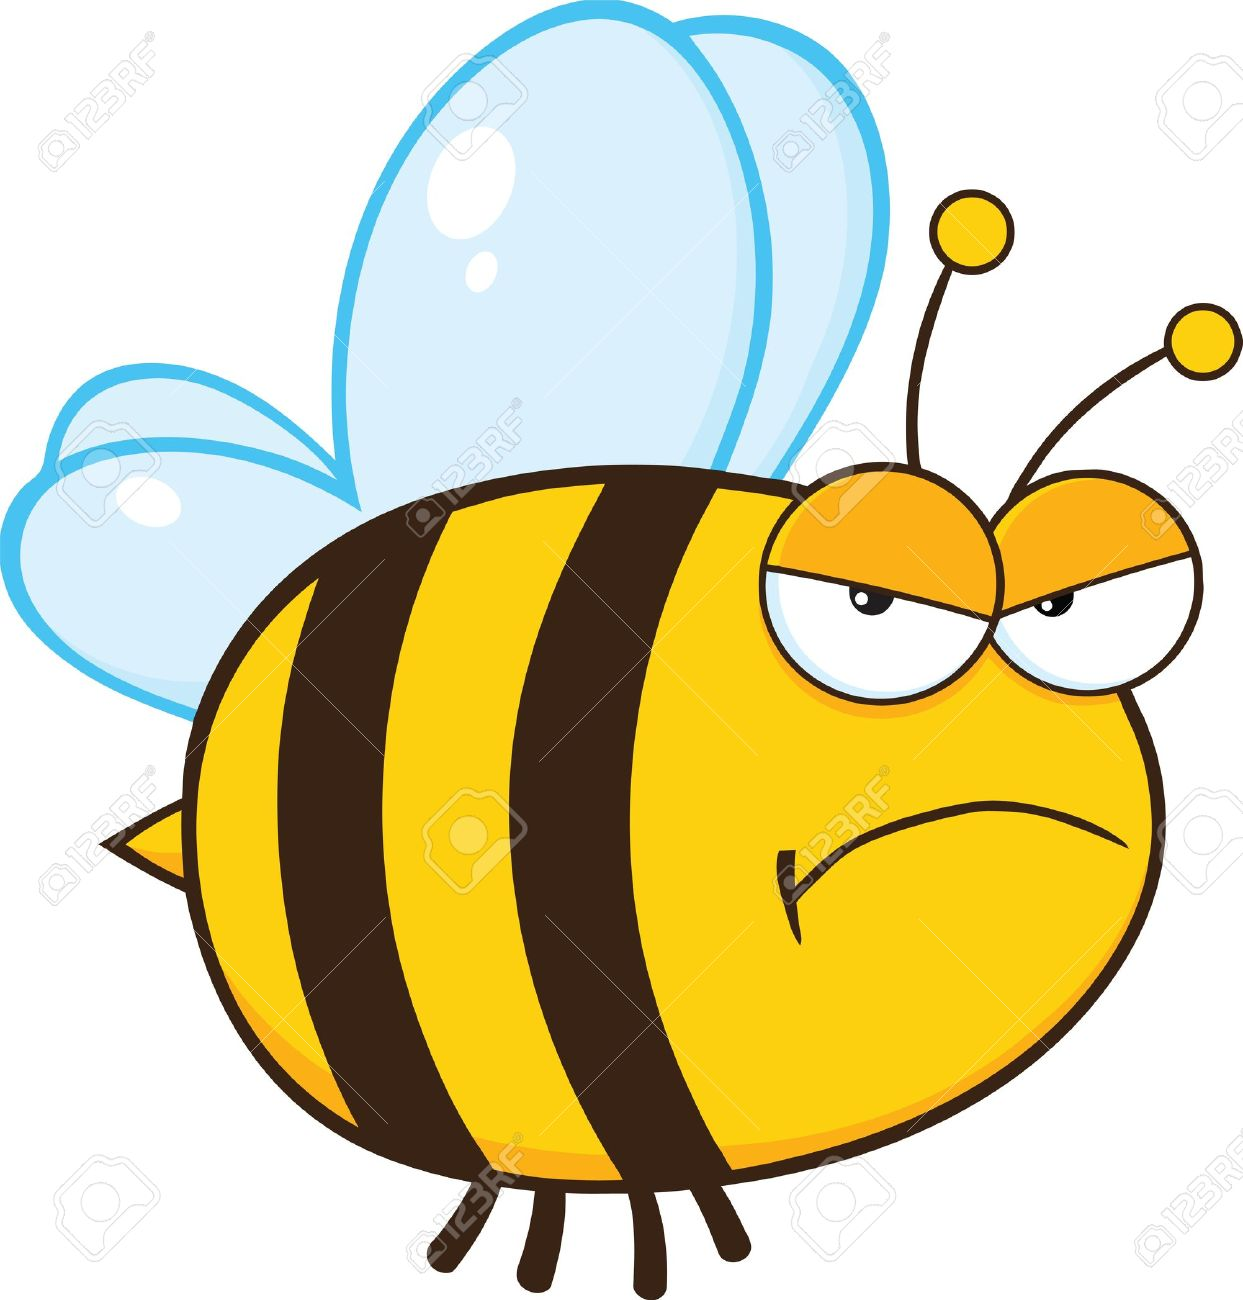 Angry bee cartoon mascot character stock vector 22080167